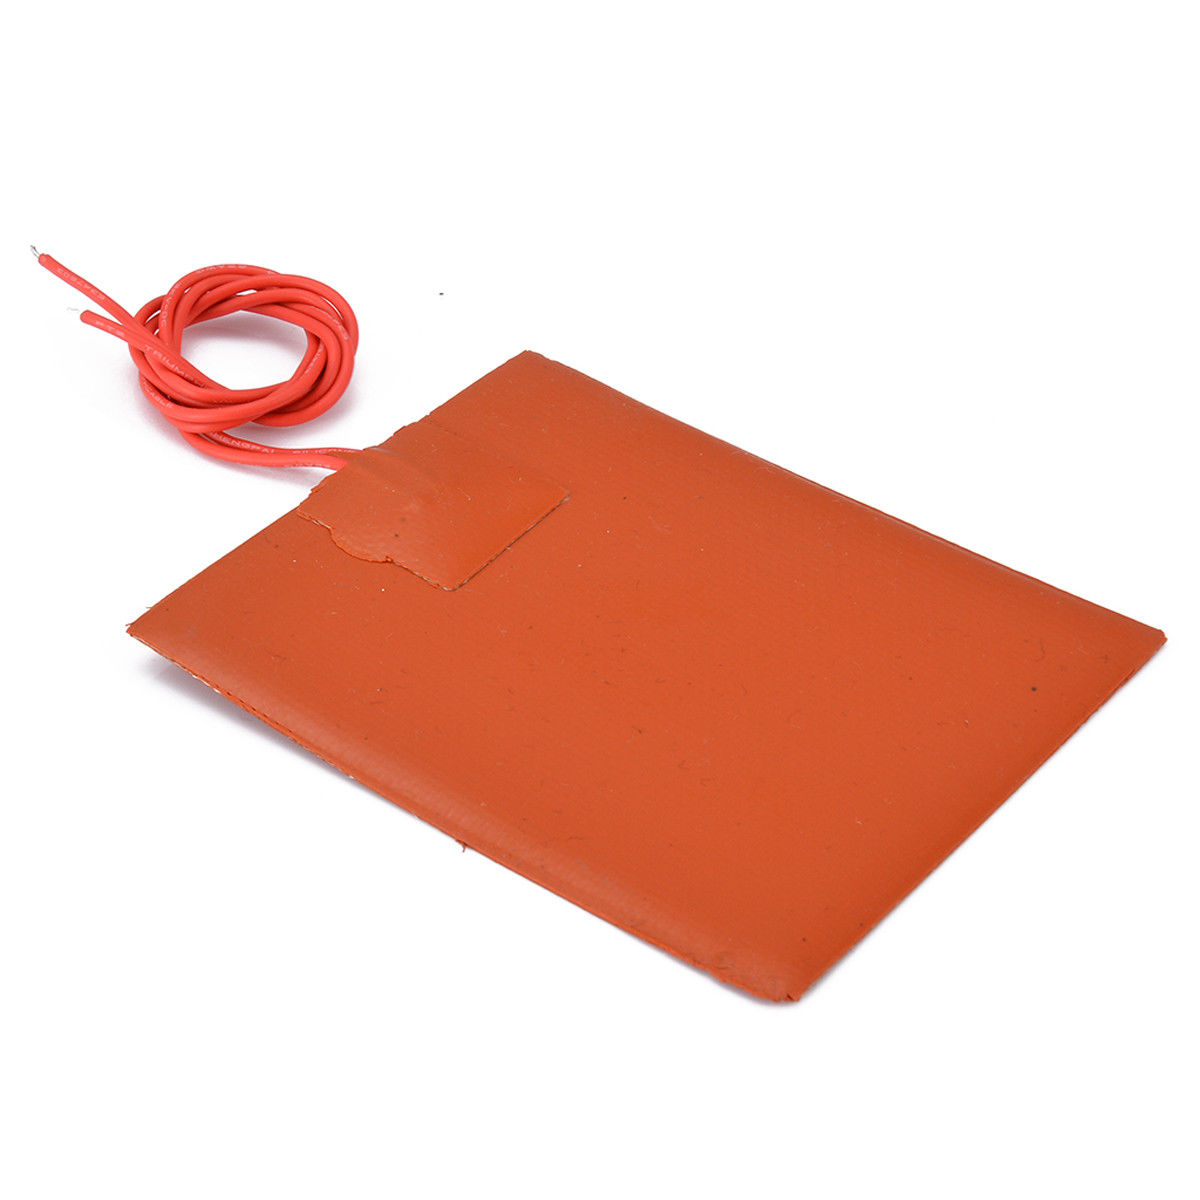 Silicone Rubber Heater Mat For 3D Printer Heating Pad Flexible Heated Universal 80x100mm 12V DC New High Quality